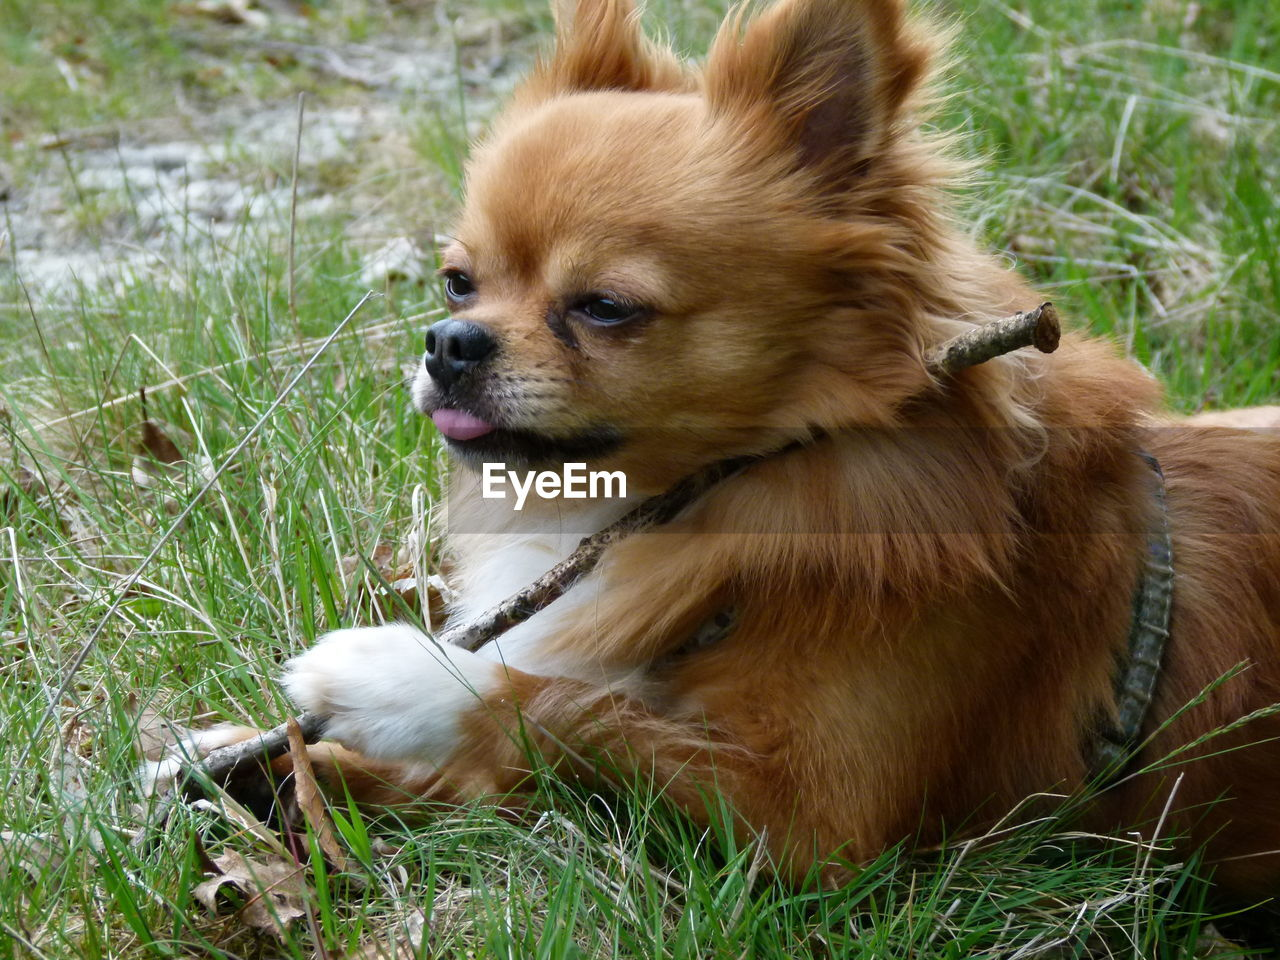 dog, domestic animals, animal themes, grass, pets, mammal, one animal, day, pomeranian, no people, outdoors, sitting, nature, close-up